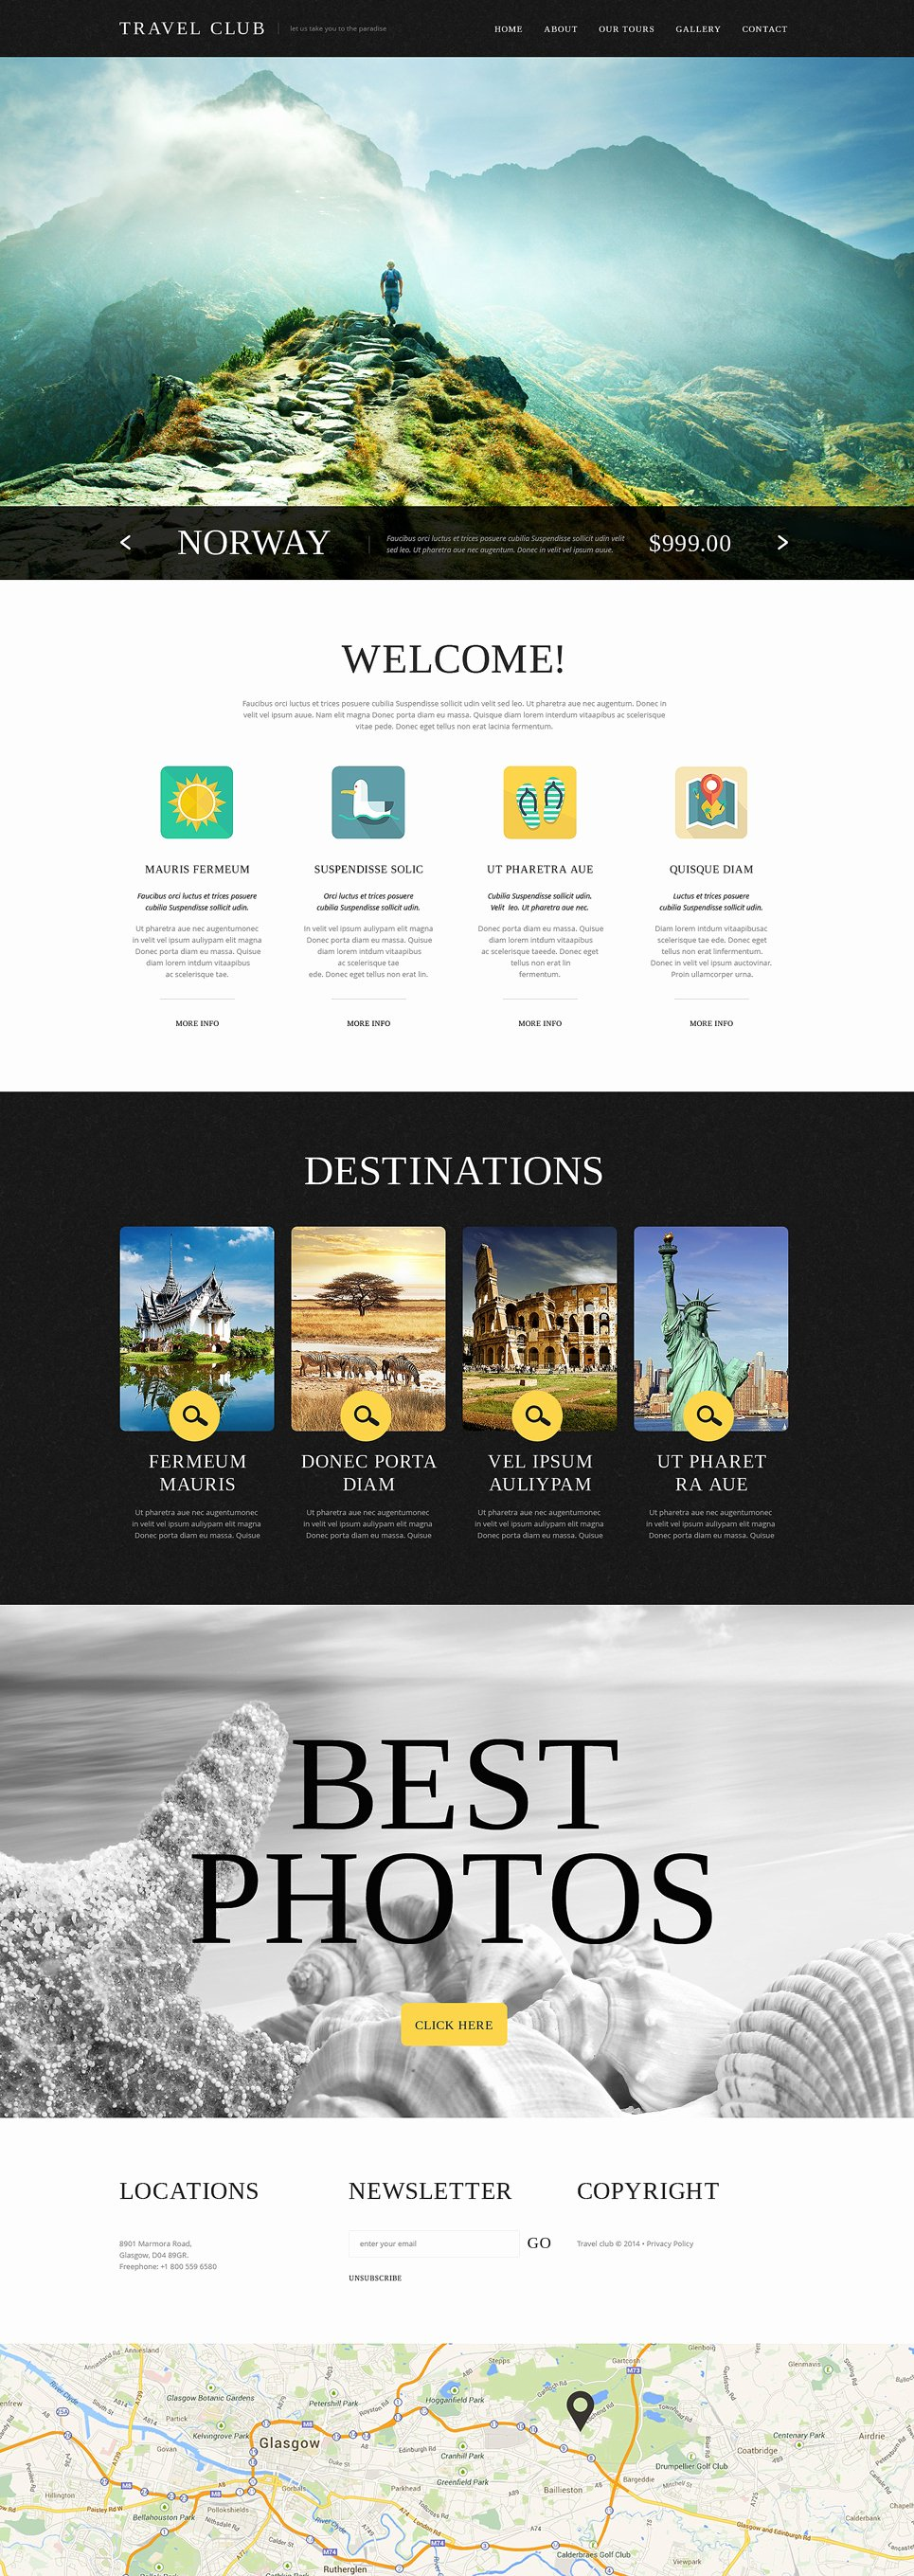 Travel Agency Website Template Best Of Travel Agency Website Template